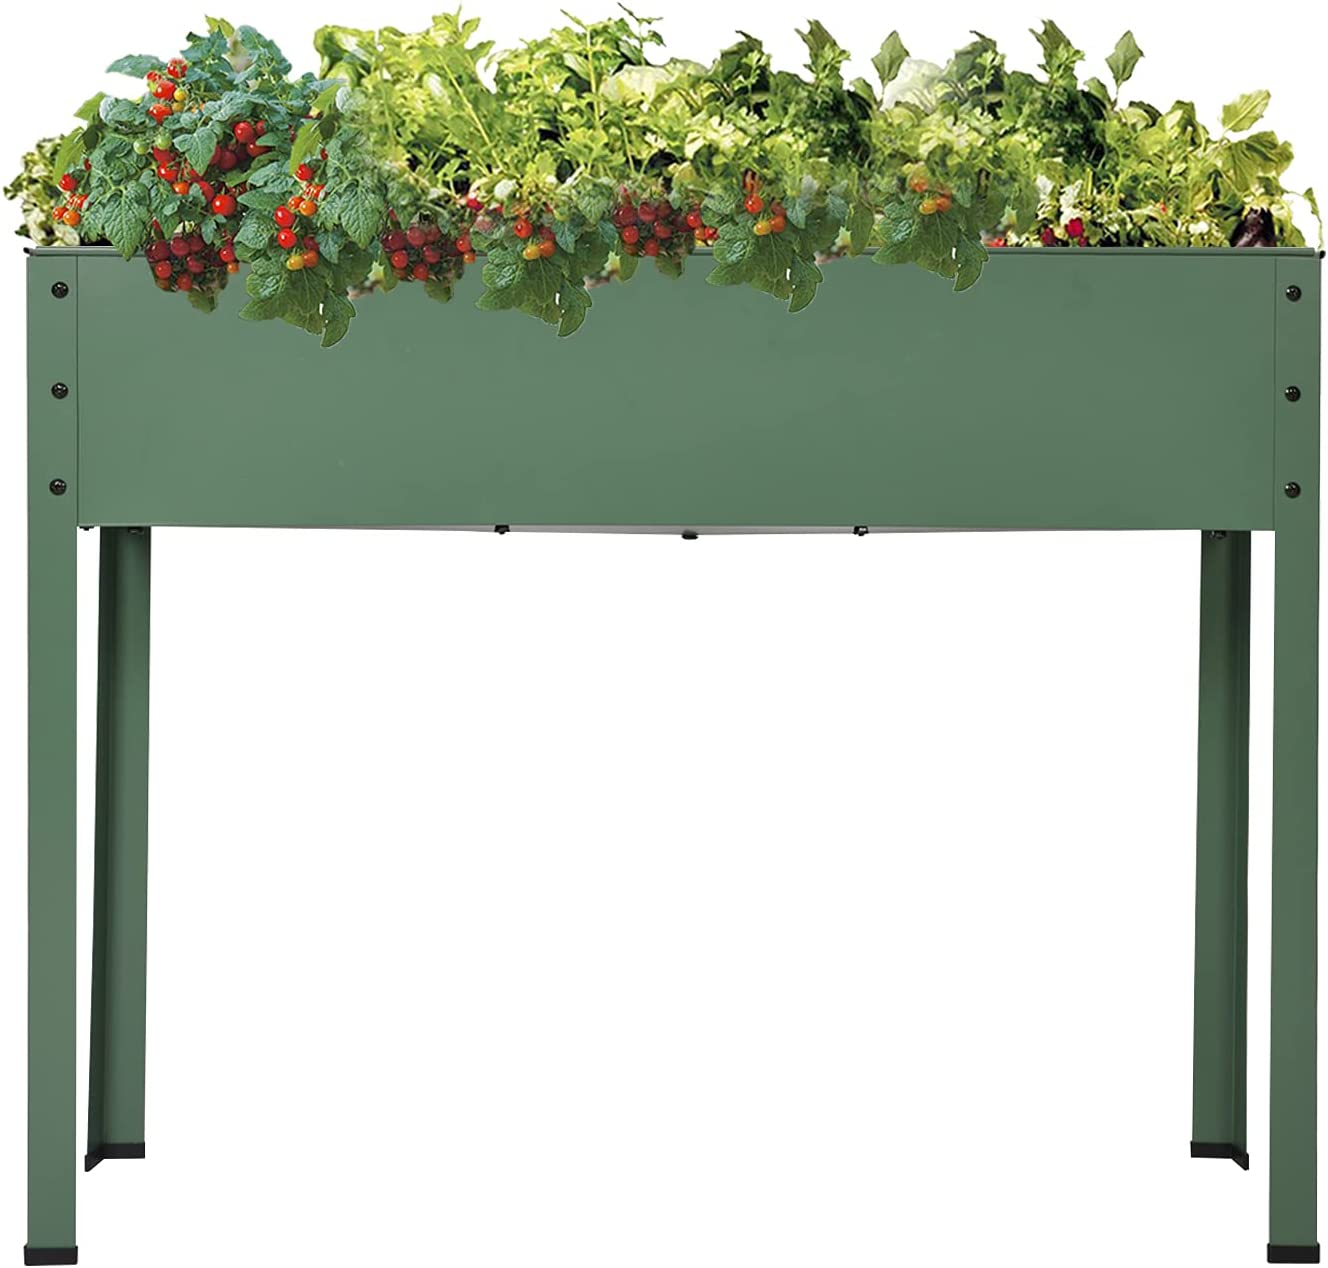 Kinbor Herb Garden Planter, Elevated Planter Box with Legs Outdoor, Raised Garden Bed, Outdoor Standing Planter Beds for Vegetable Flower Herb